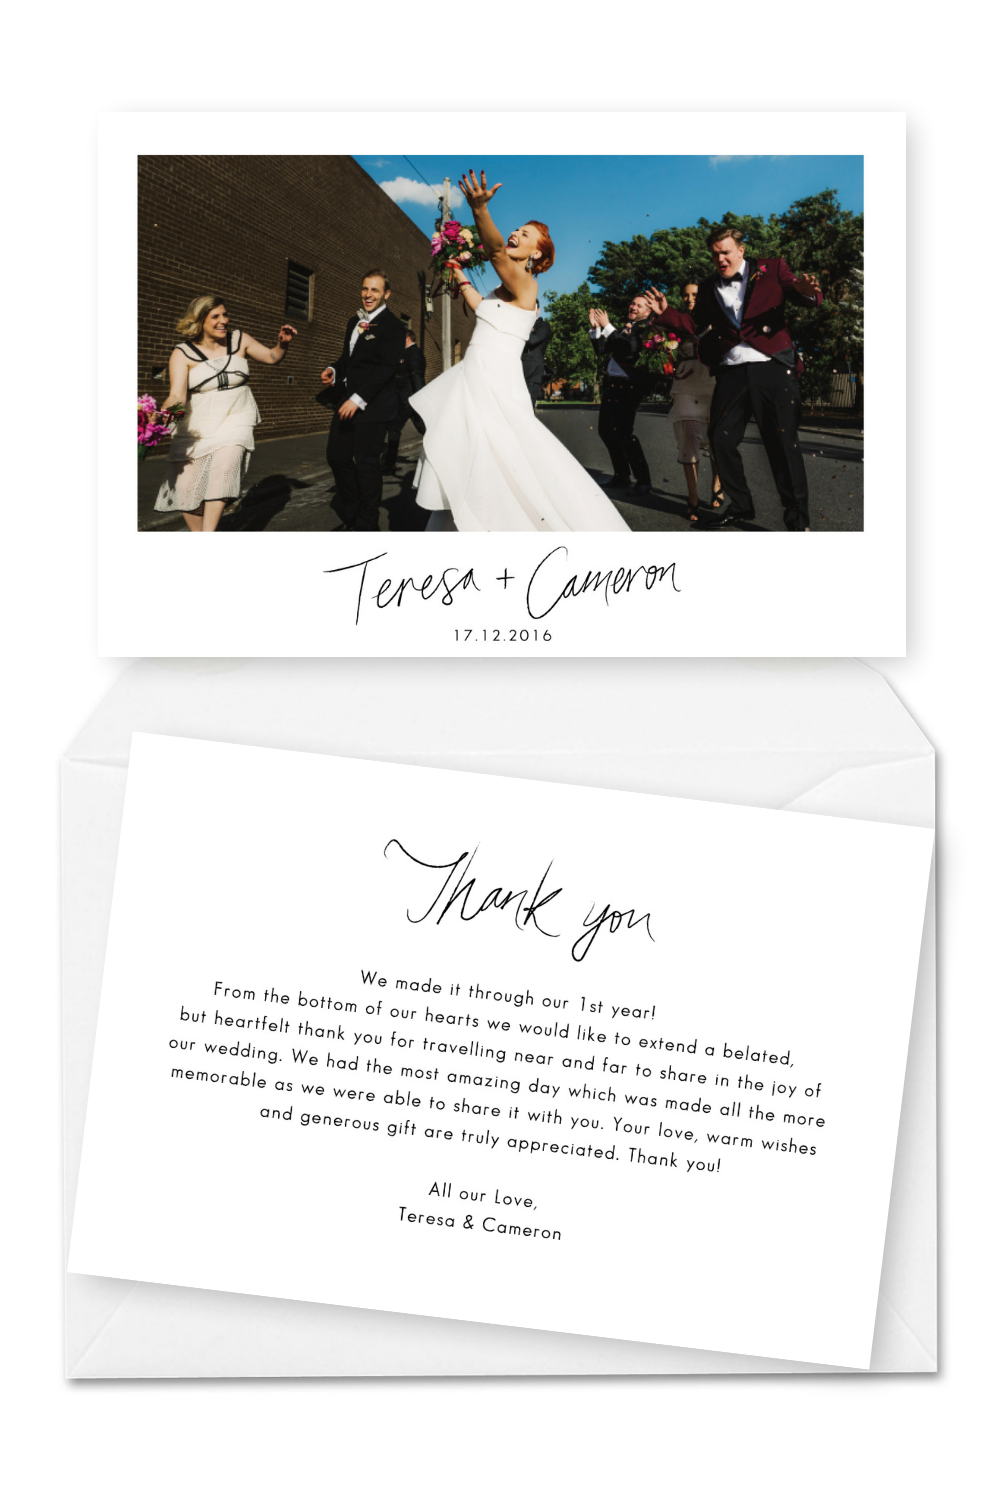 10 Wording Examples for Your Wedding Thank You Cards